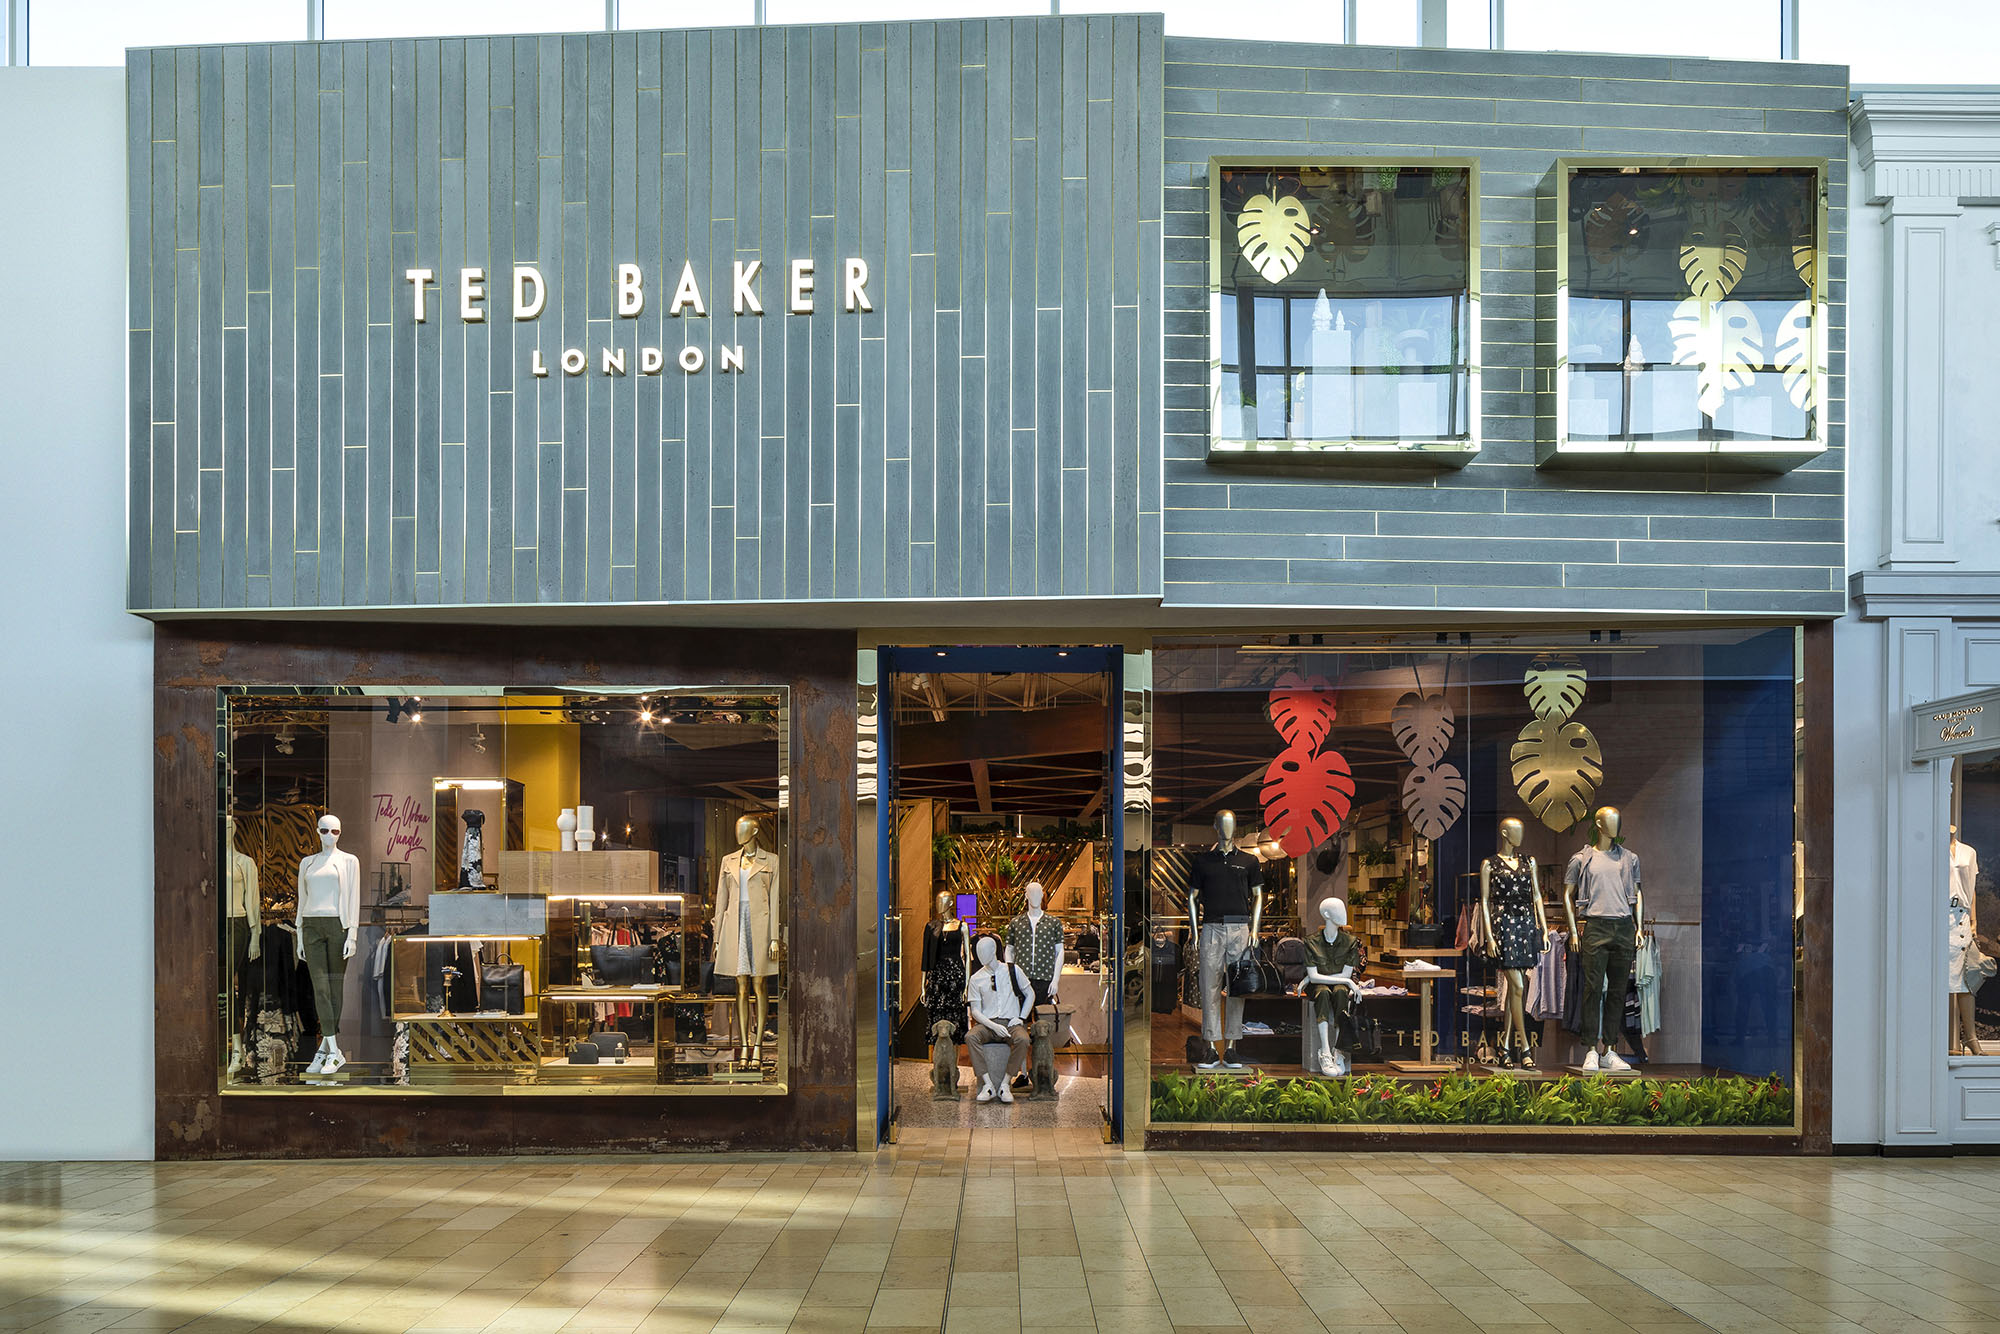 200829-Ted_Baker_Yorkdale-001a-cr